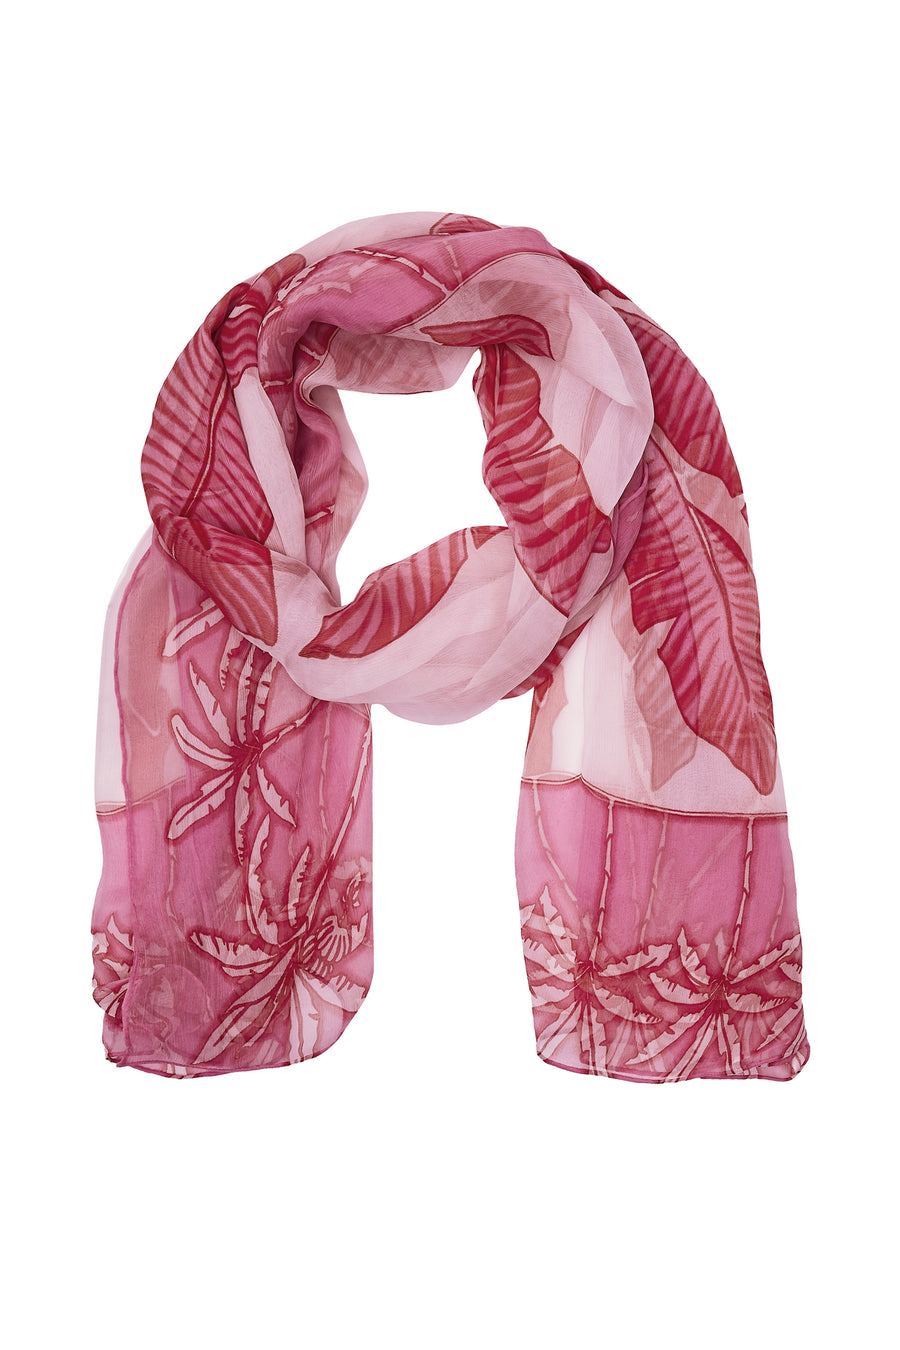 Lotty B Sarong in Silk Chiffon: BANANA TREE - PINK